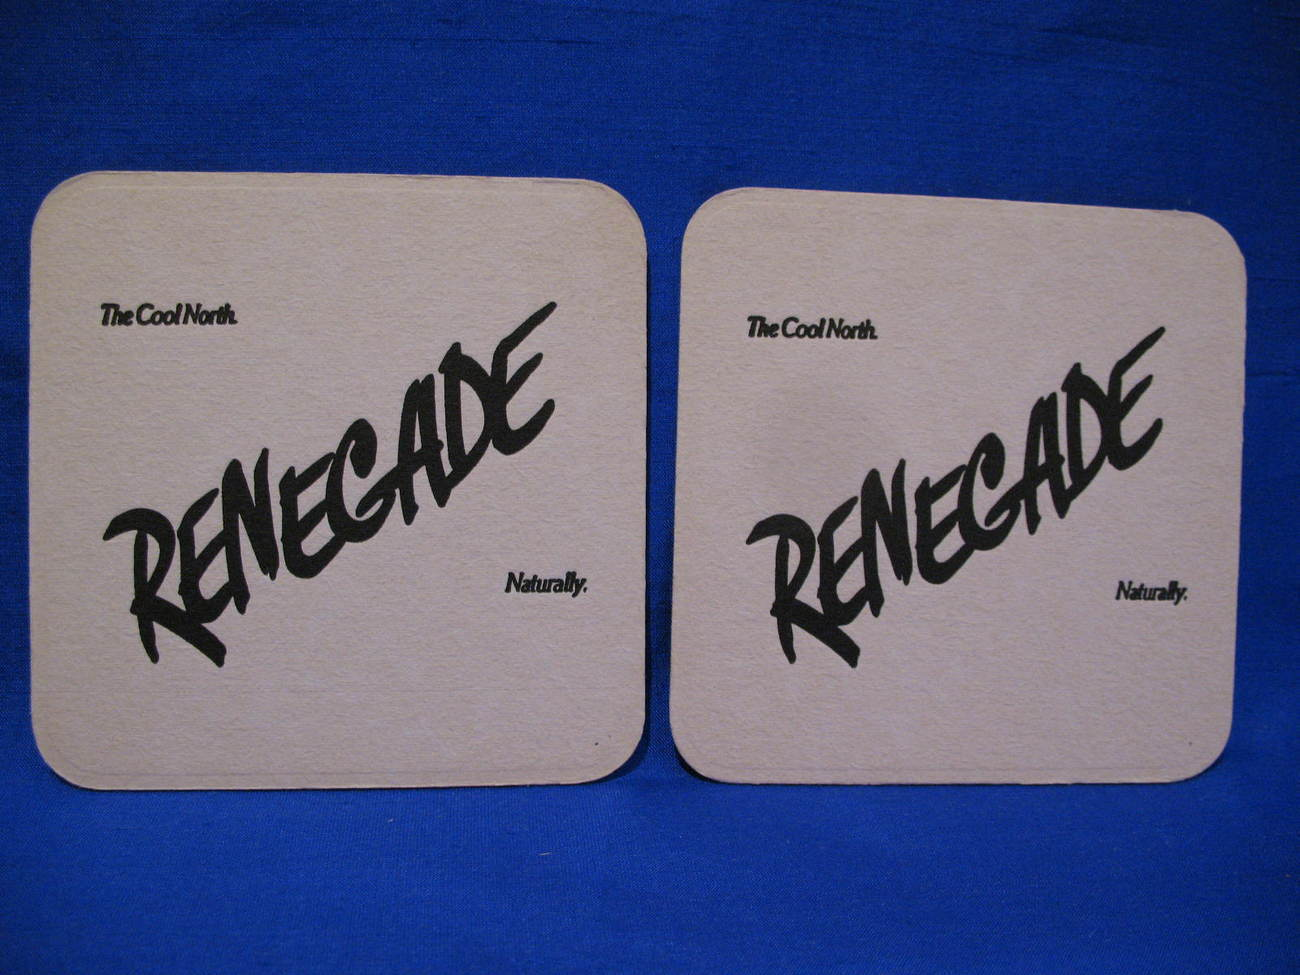 Renegade Beer Coasters Souvenir set of 2